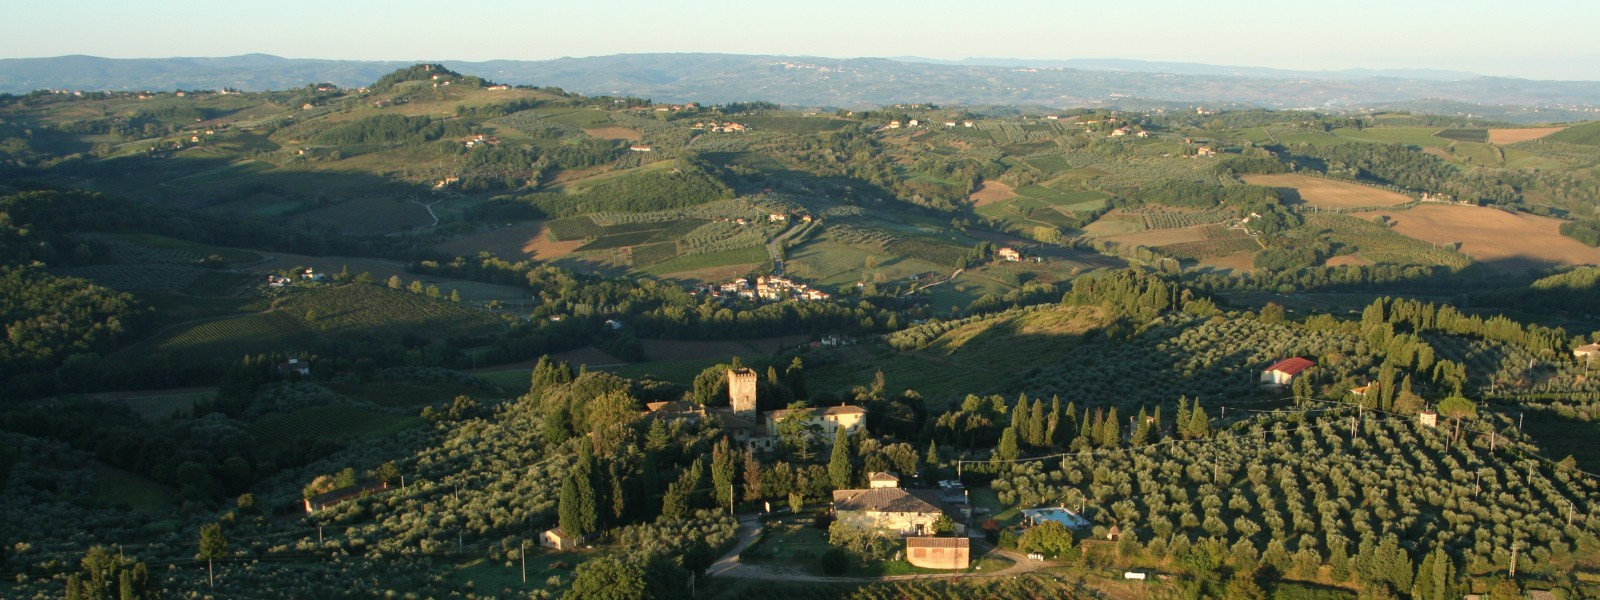 Experience hot air ballooning over Tuscany